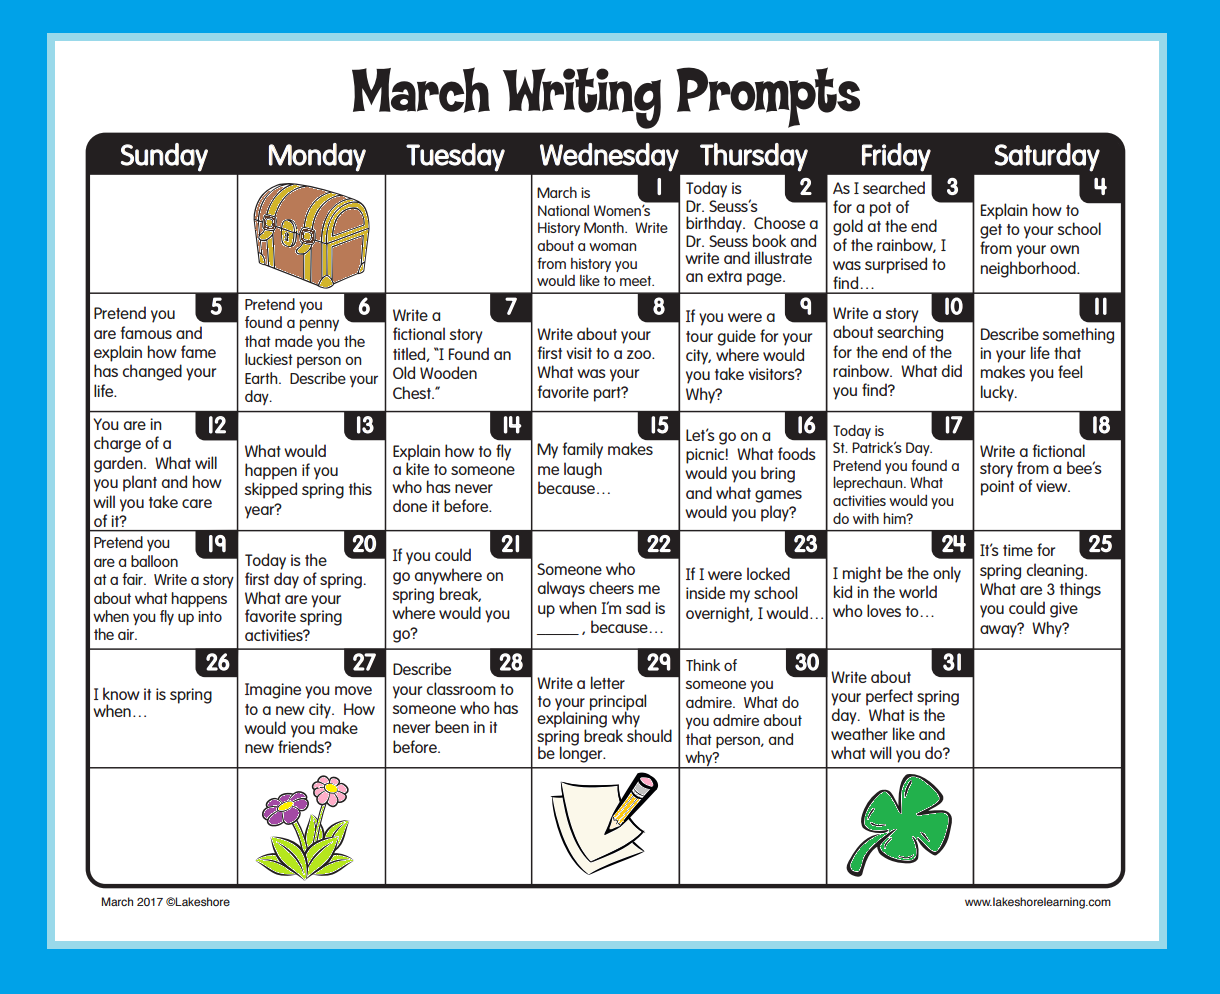 March Writing Prompts From Lakeshore Learning